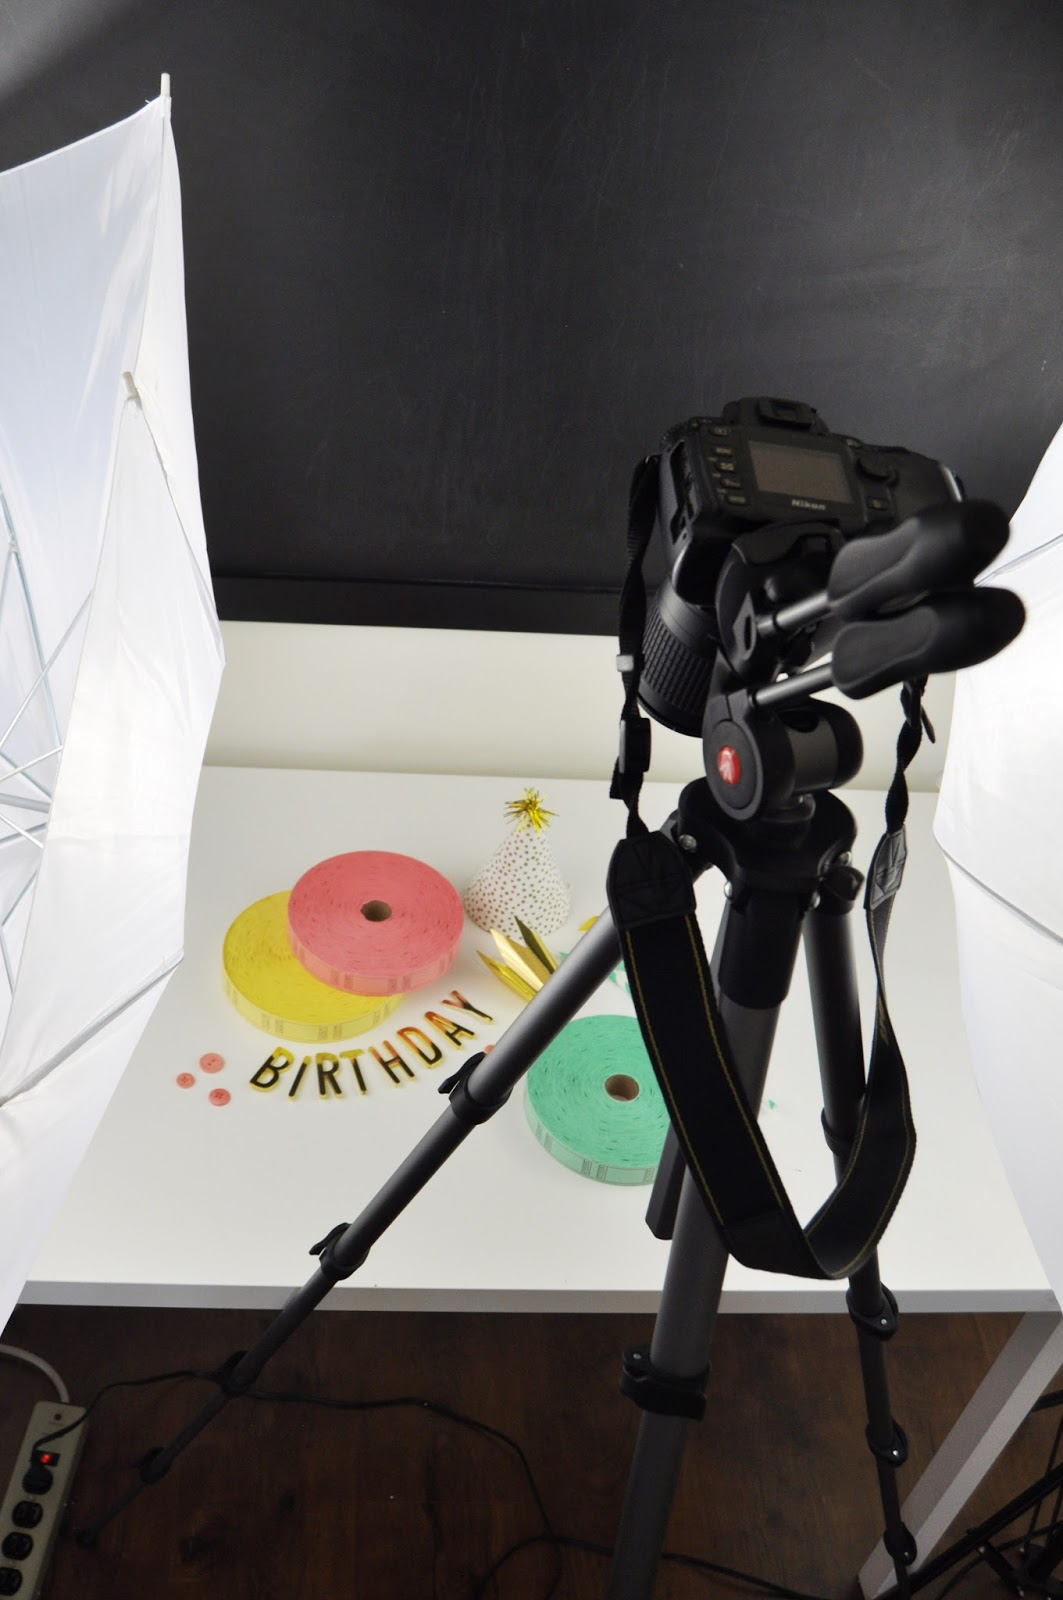 How to use a photography lighting kit. How to set up your photo lighting kit. Photography lighting kits tips and tricks by Jen Gallacher. #photography #photographylights #lightingkits